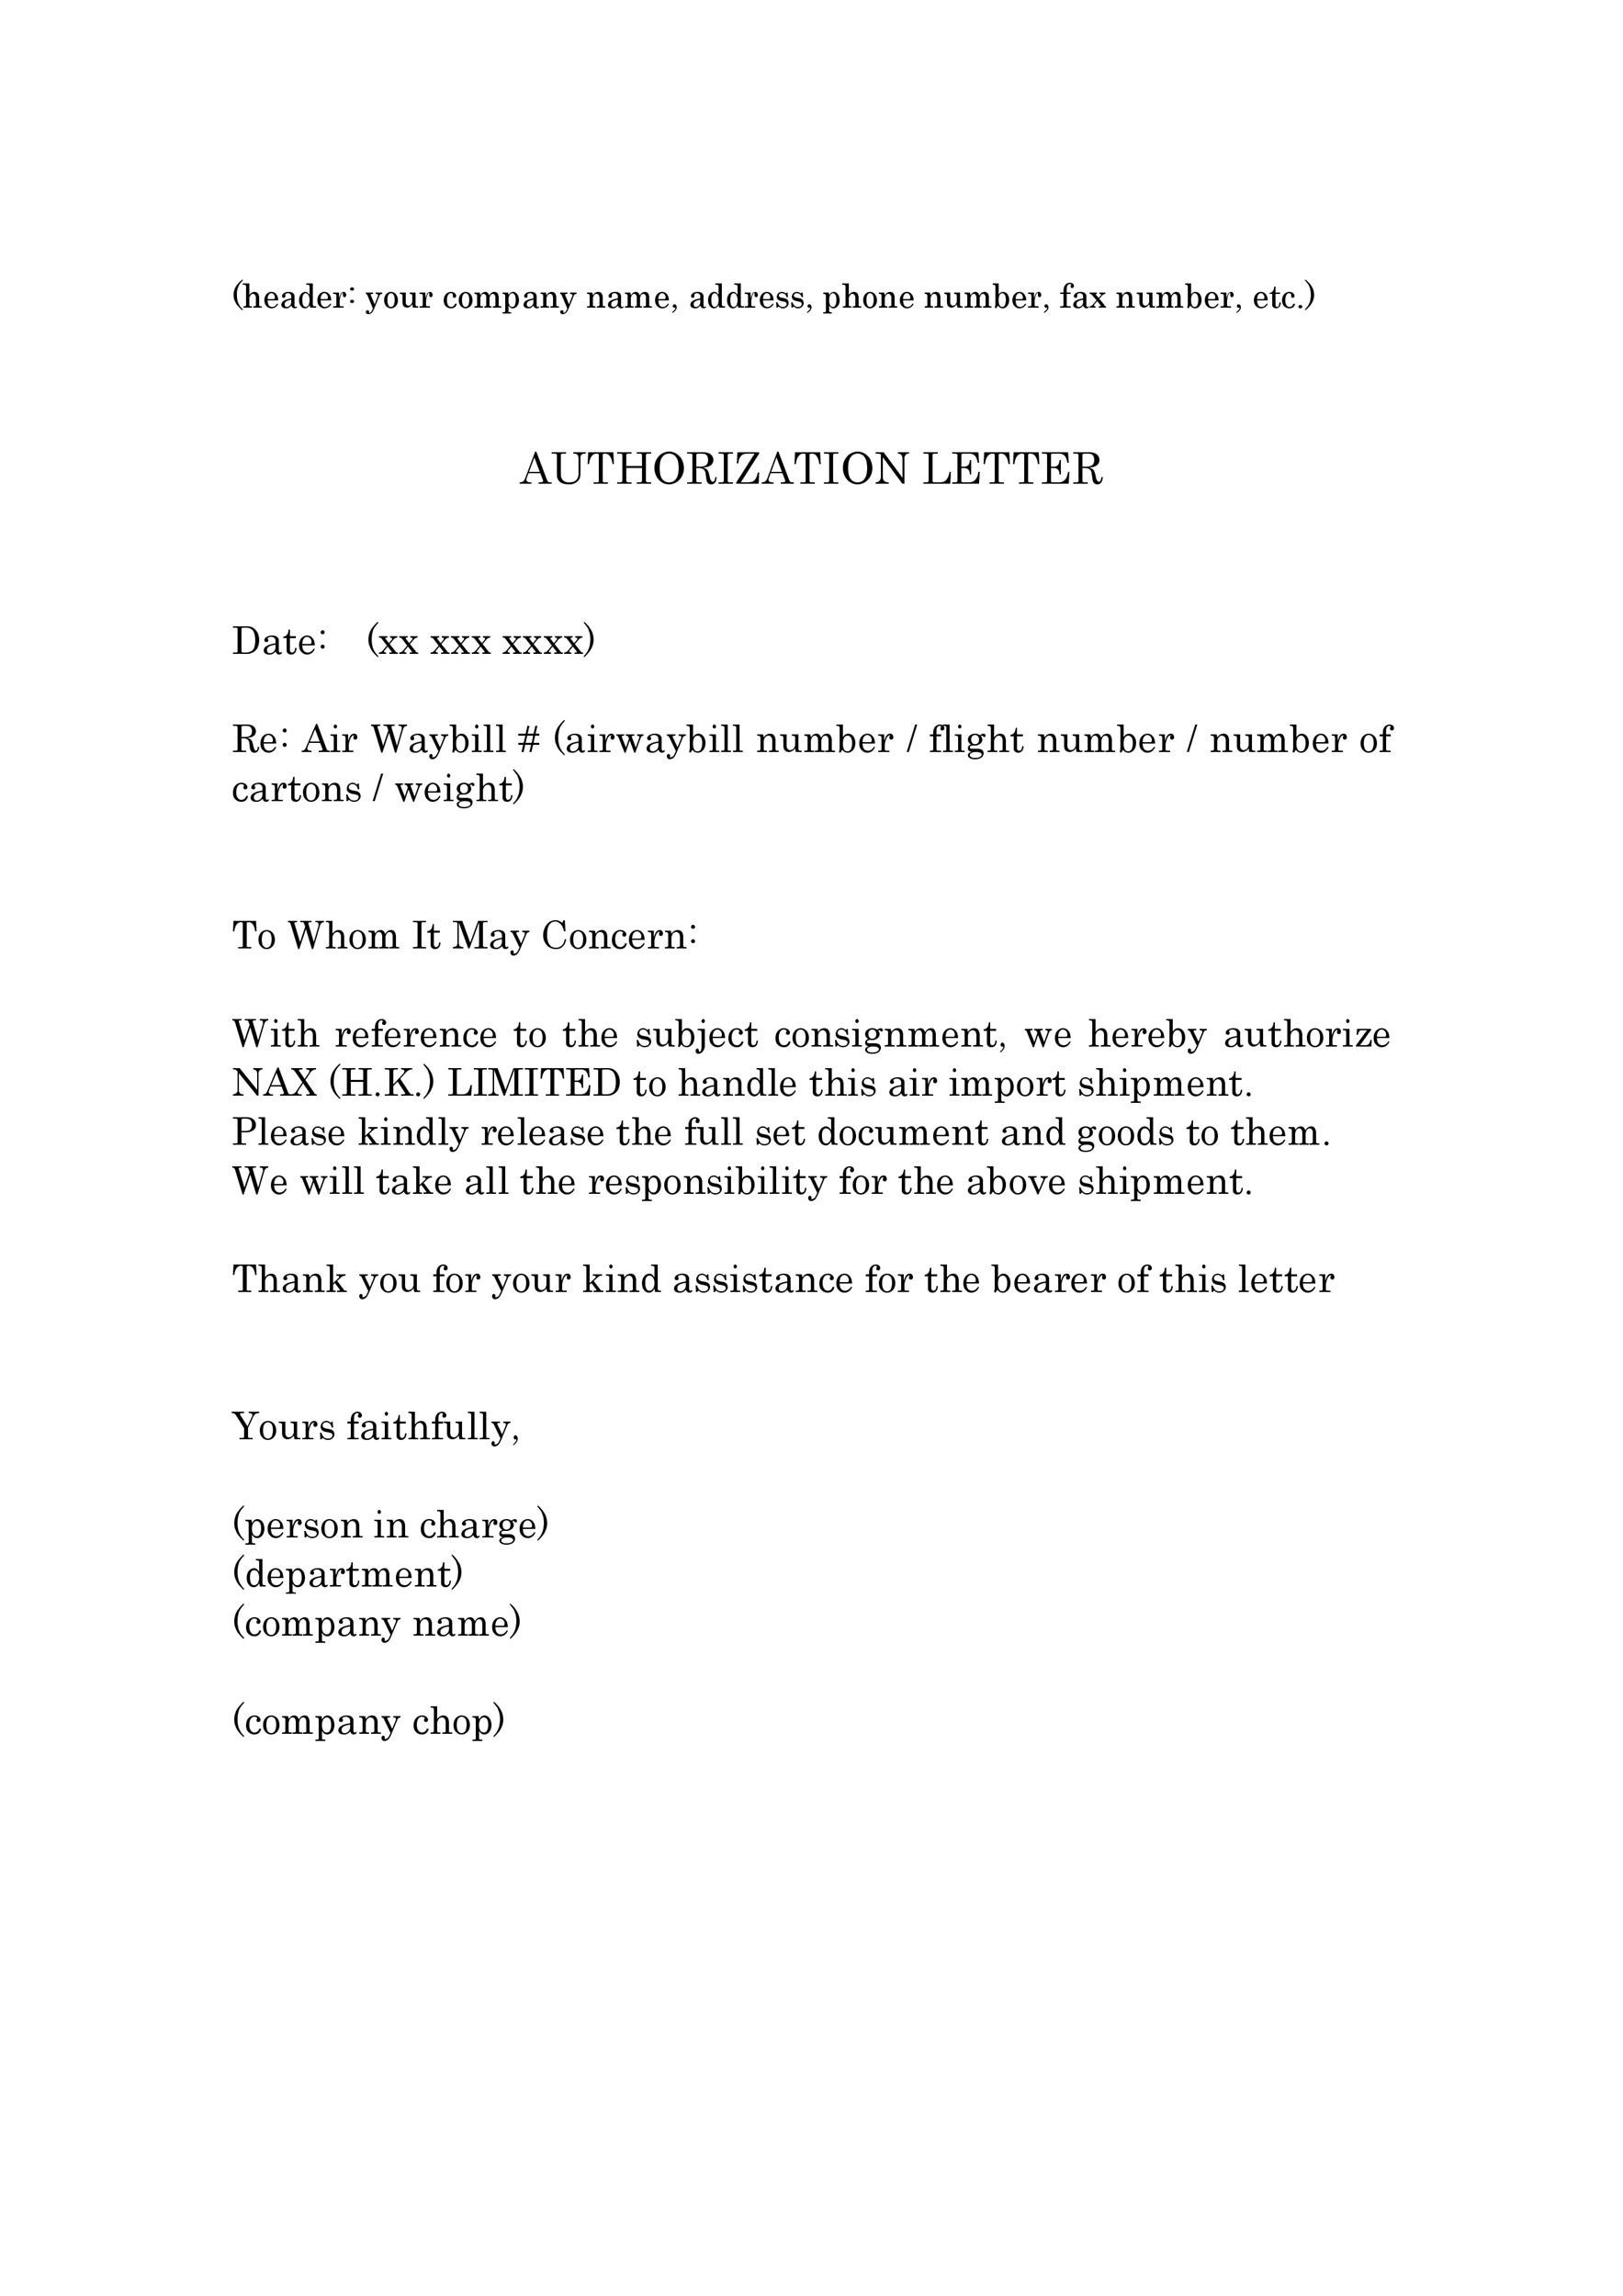 46 authorization letter samples templates template lab printable authorization letter 33 altavistaventures Gallery